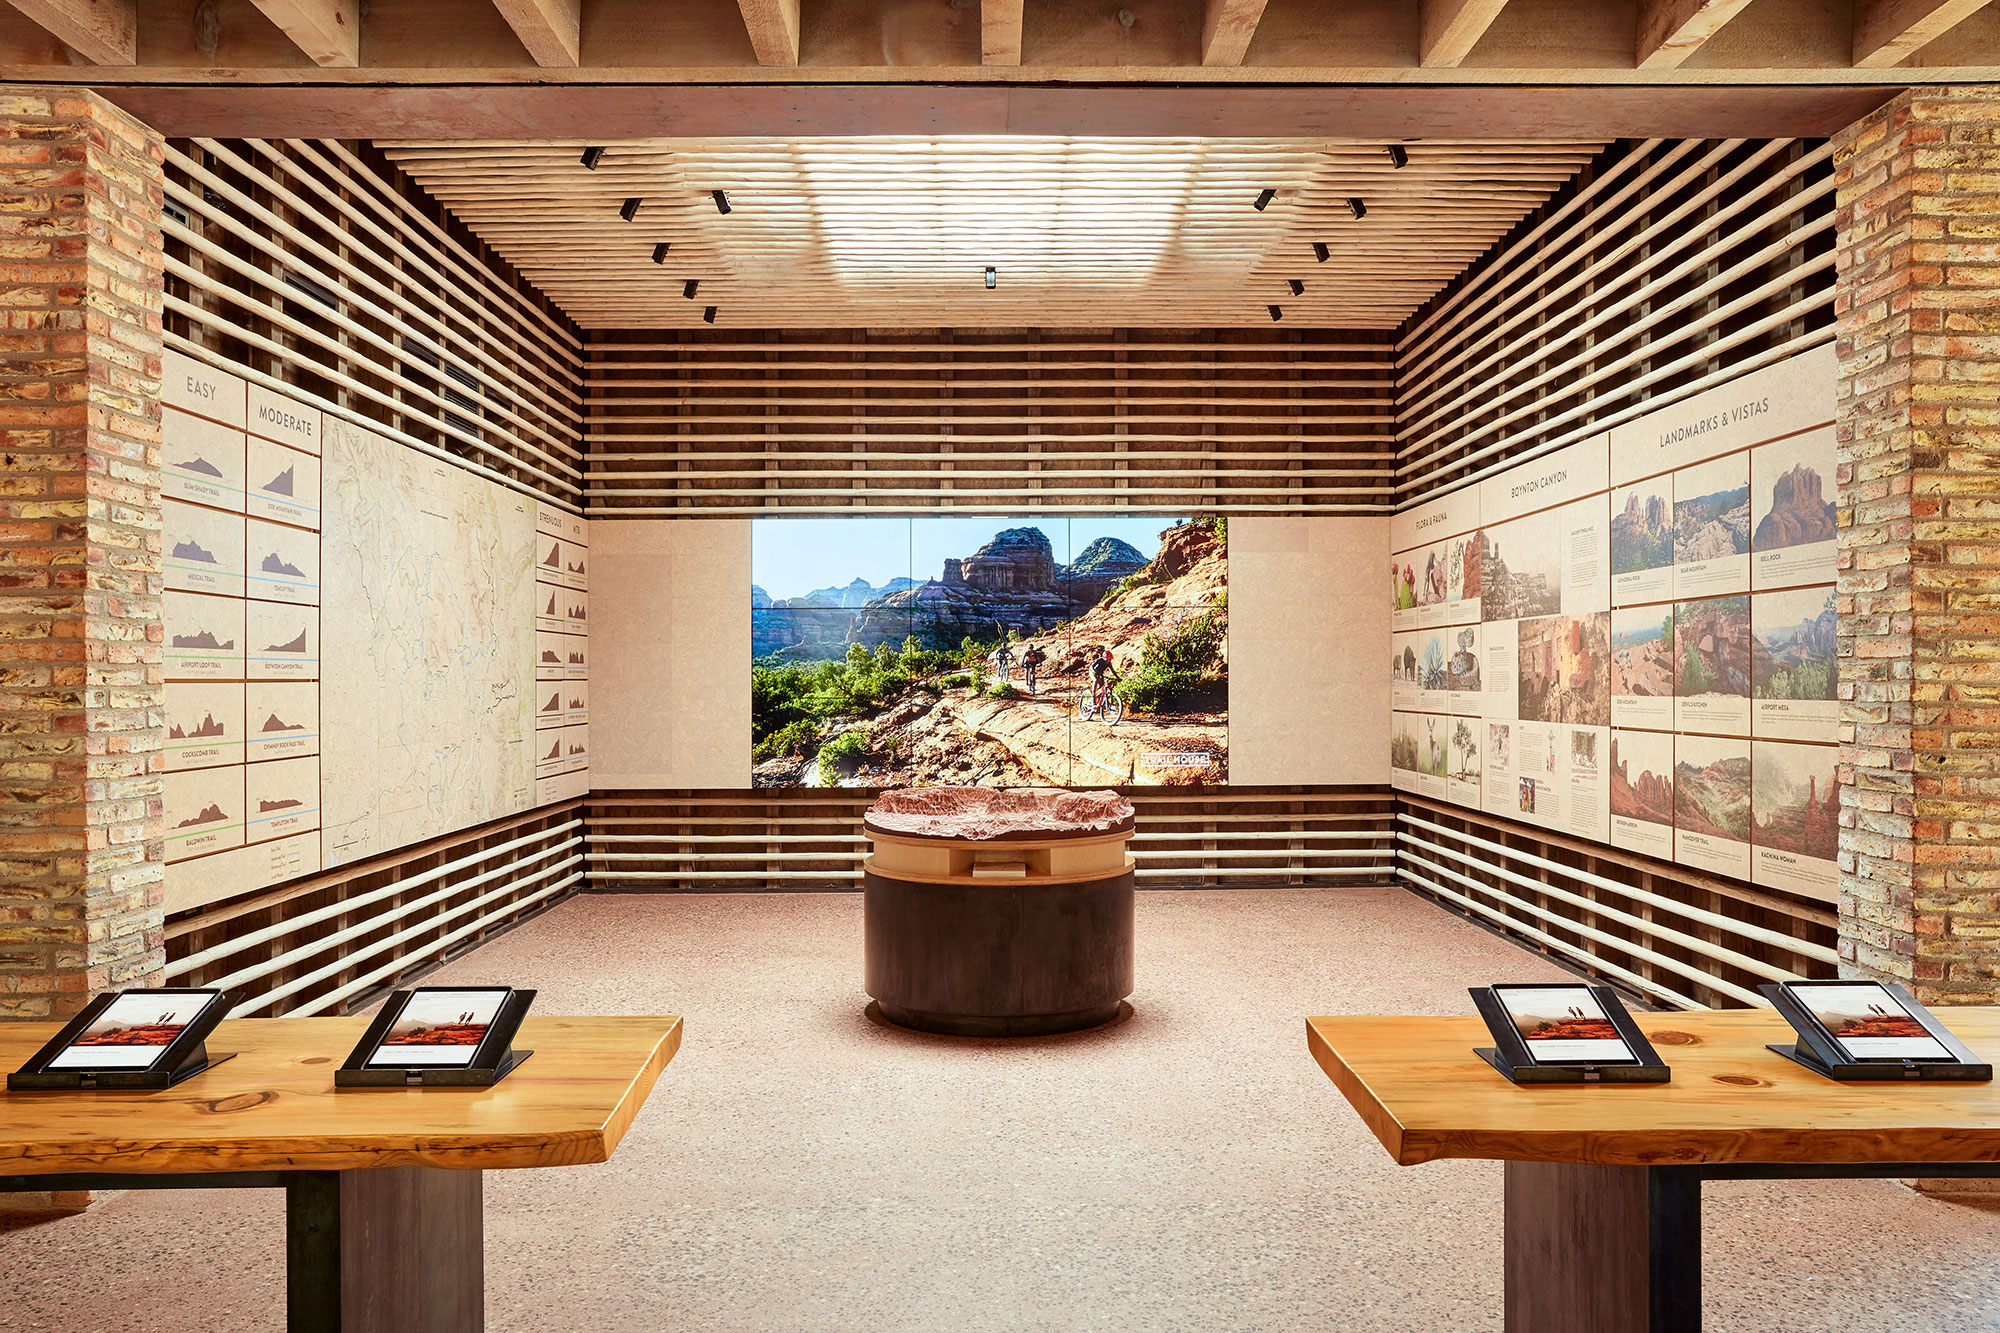 Trail House Adventure Center - Stephen Denton Photography, Los Angeles, California based interior & hospitality photographer